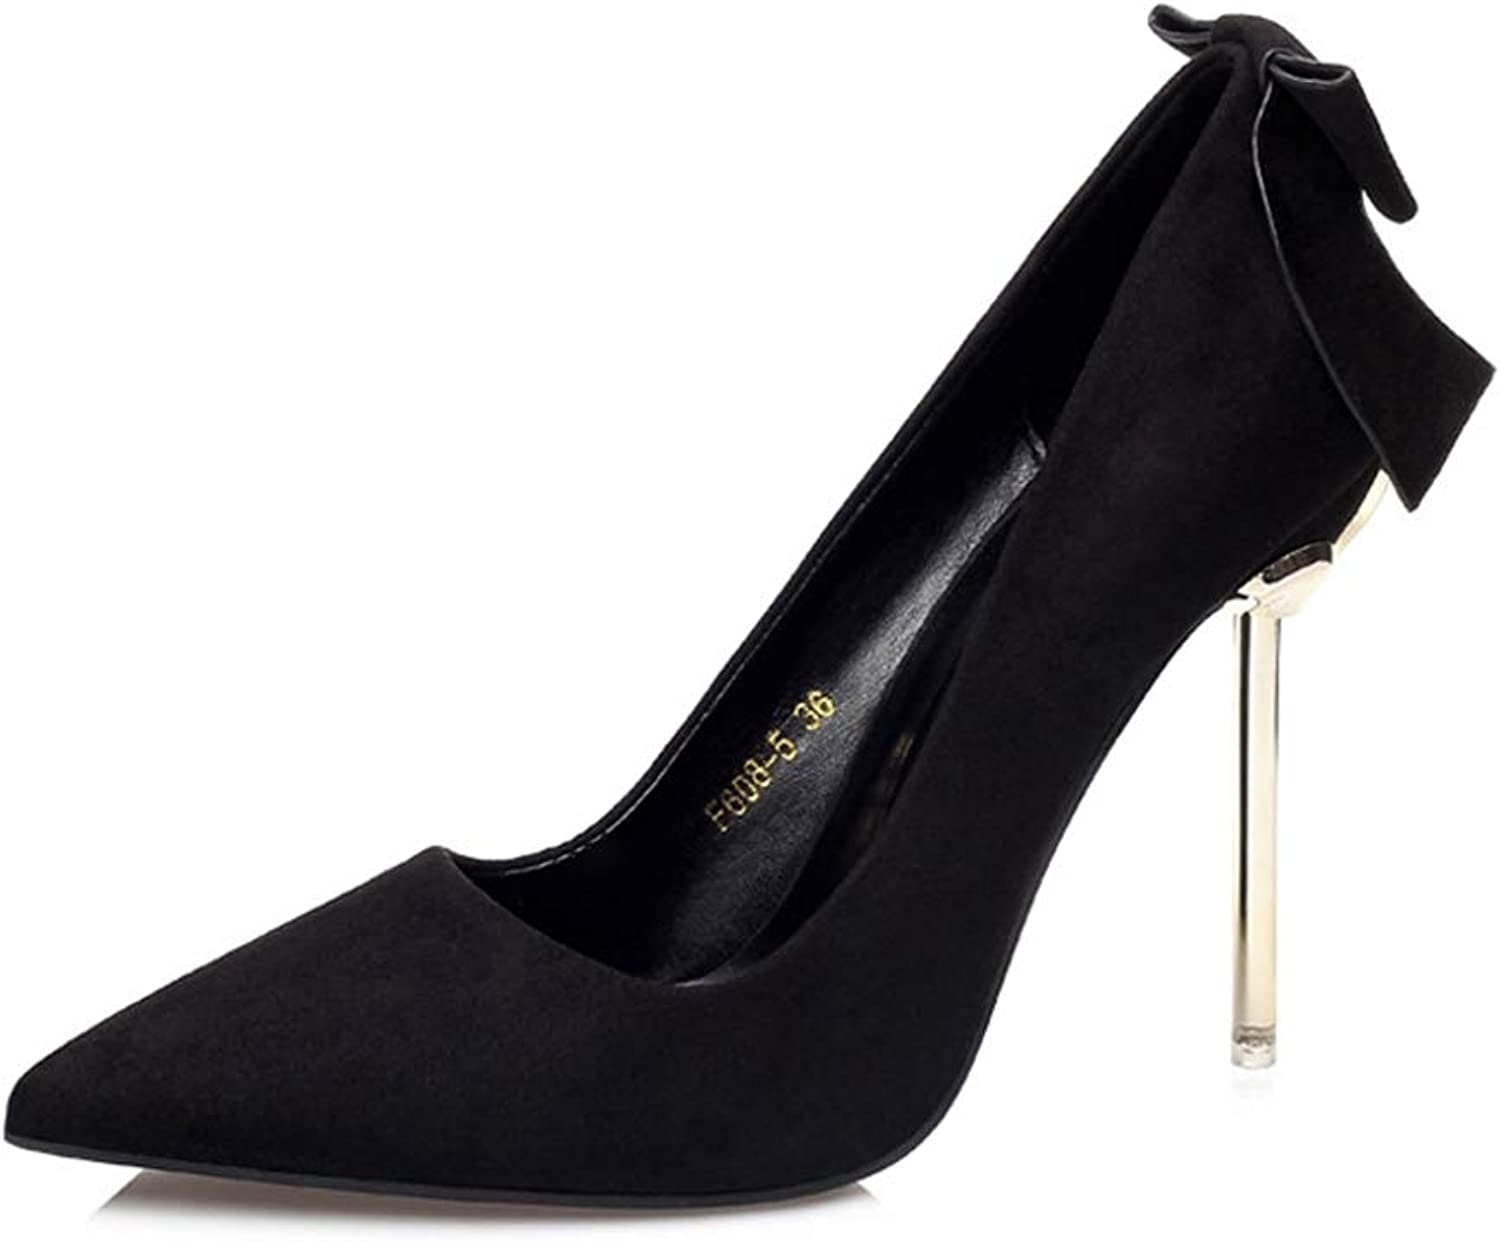 Drew Toby Women Pumps Suede Pointed Toe Bowknot Shallow Solid color Elegant OL High Heels